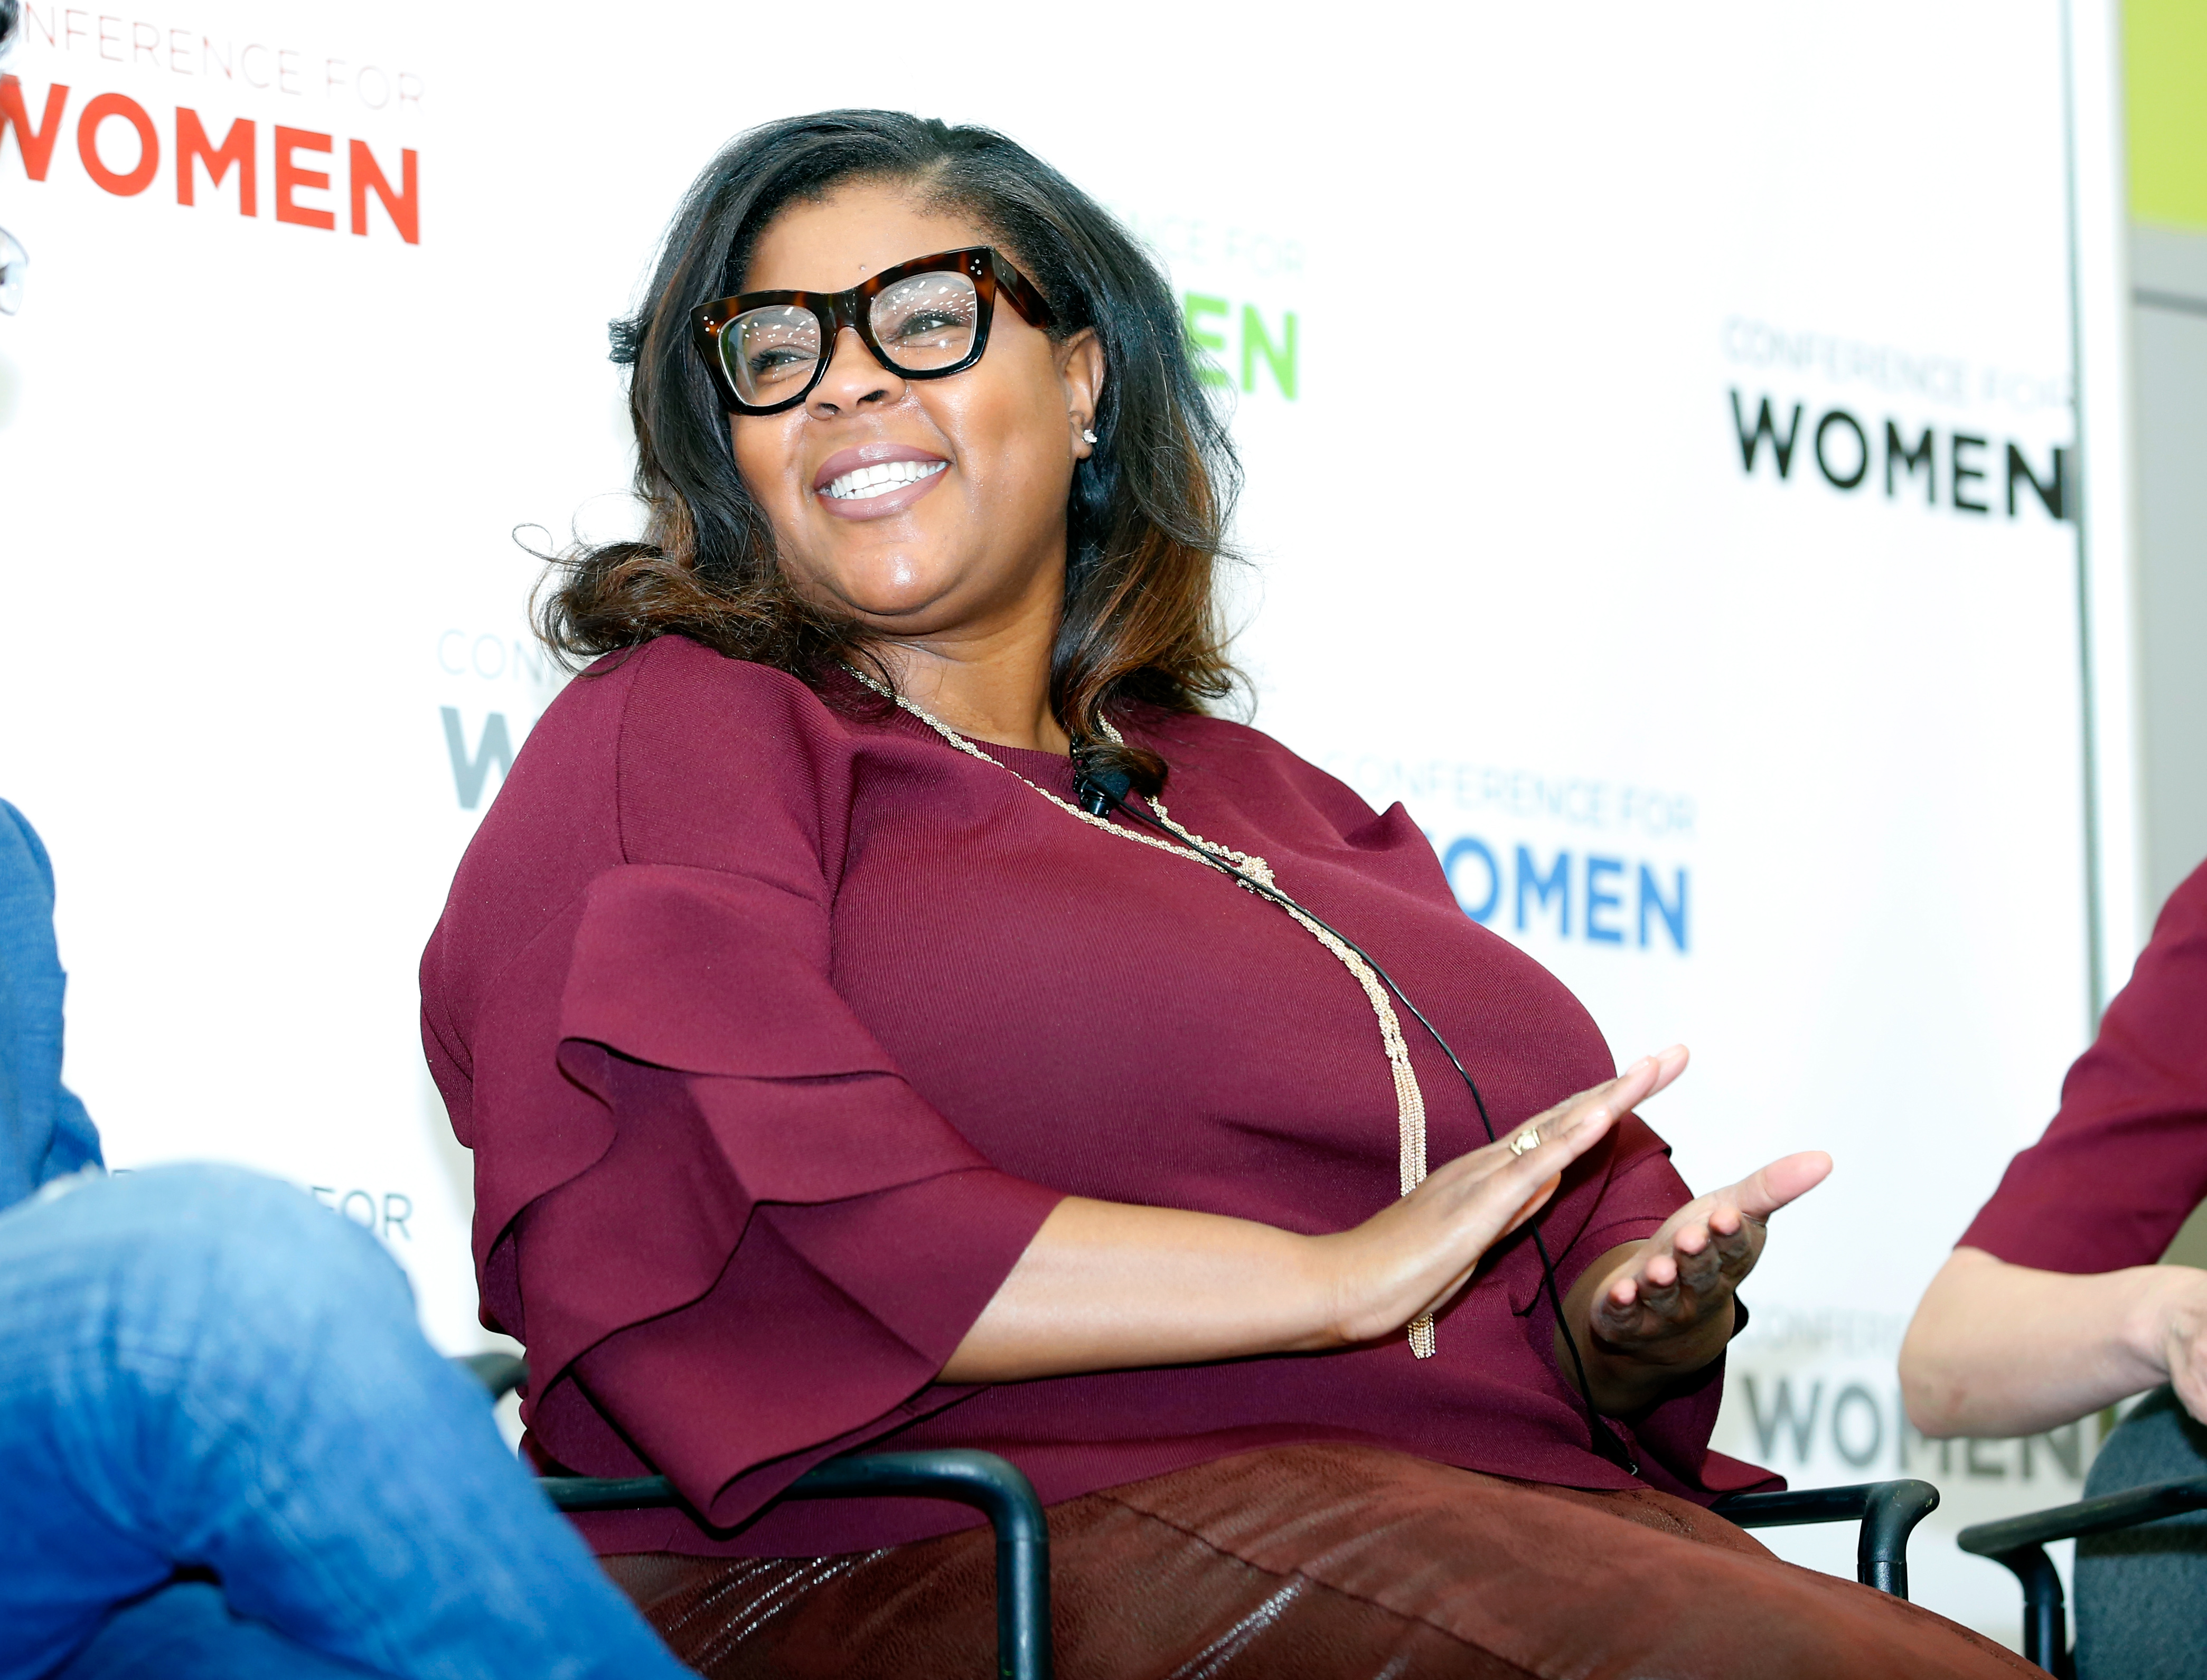 Senior director of global equality programs, Salesforce, Molly Q. Ford speaks at the Watermark Conference for Women 2018.